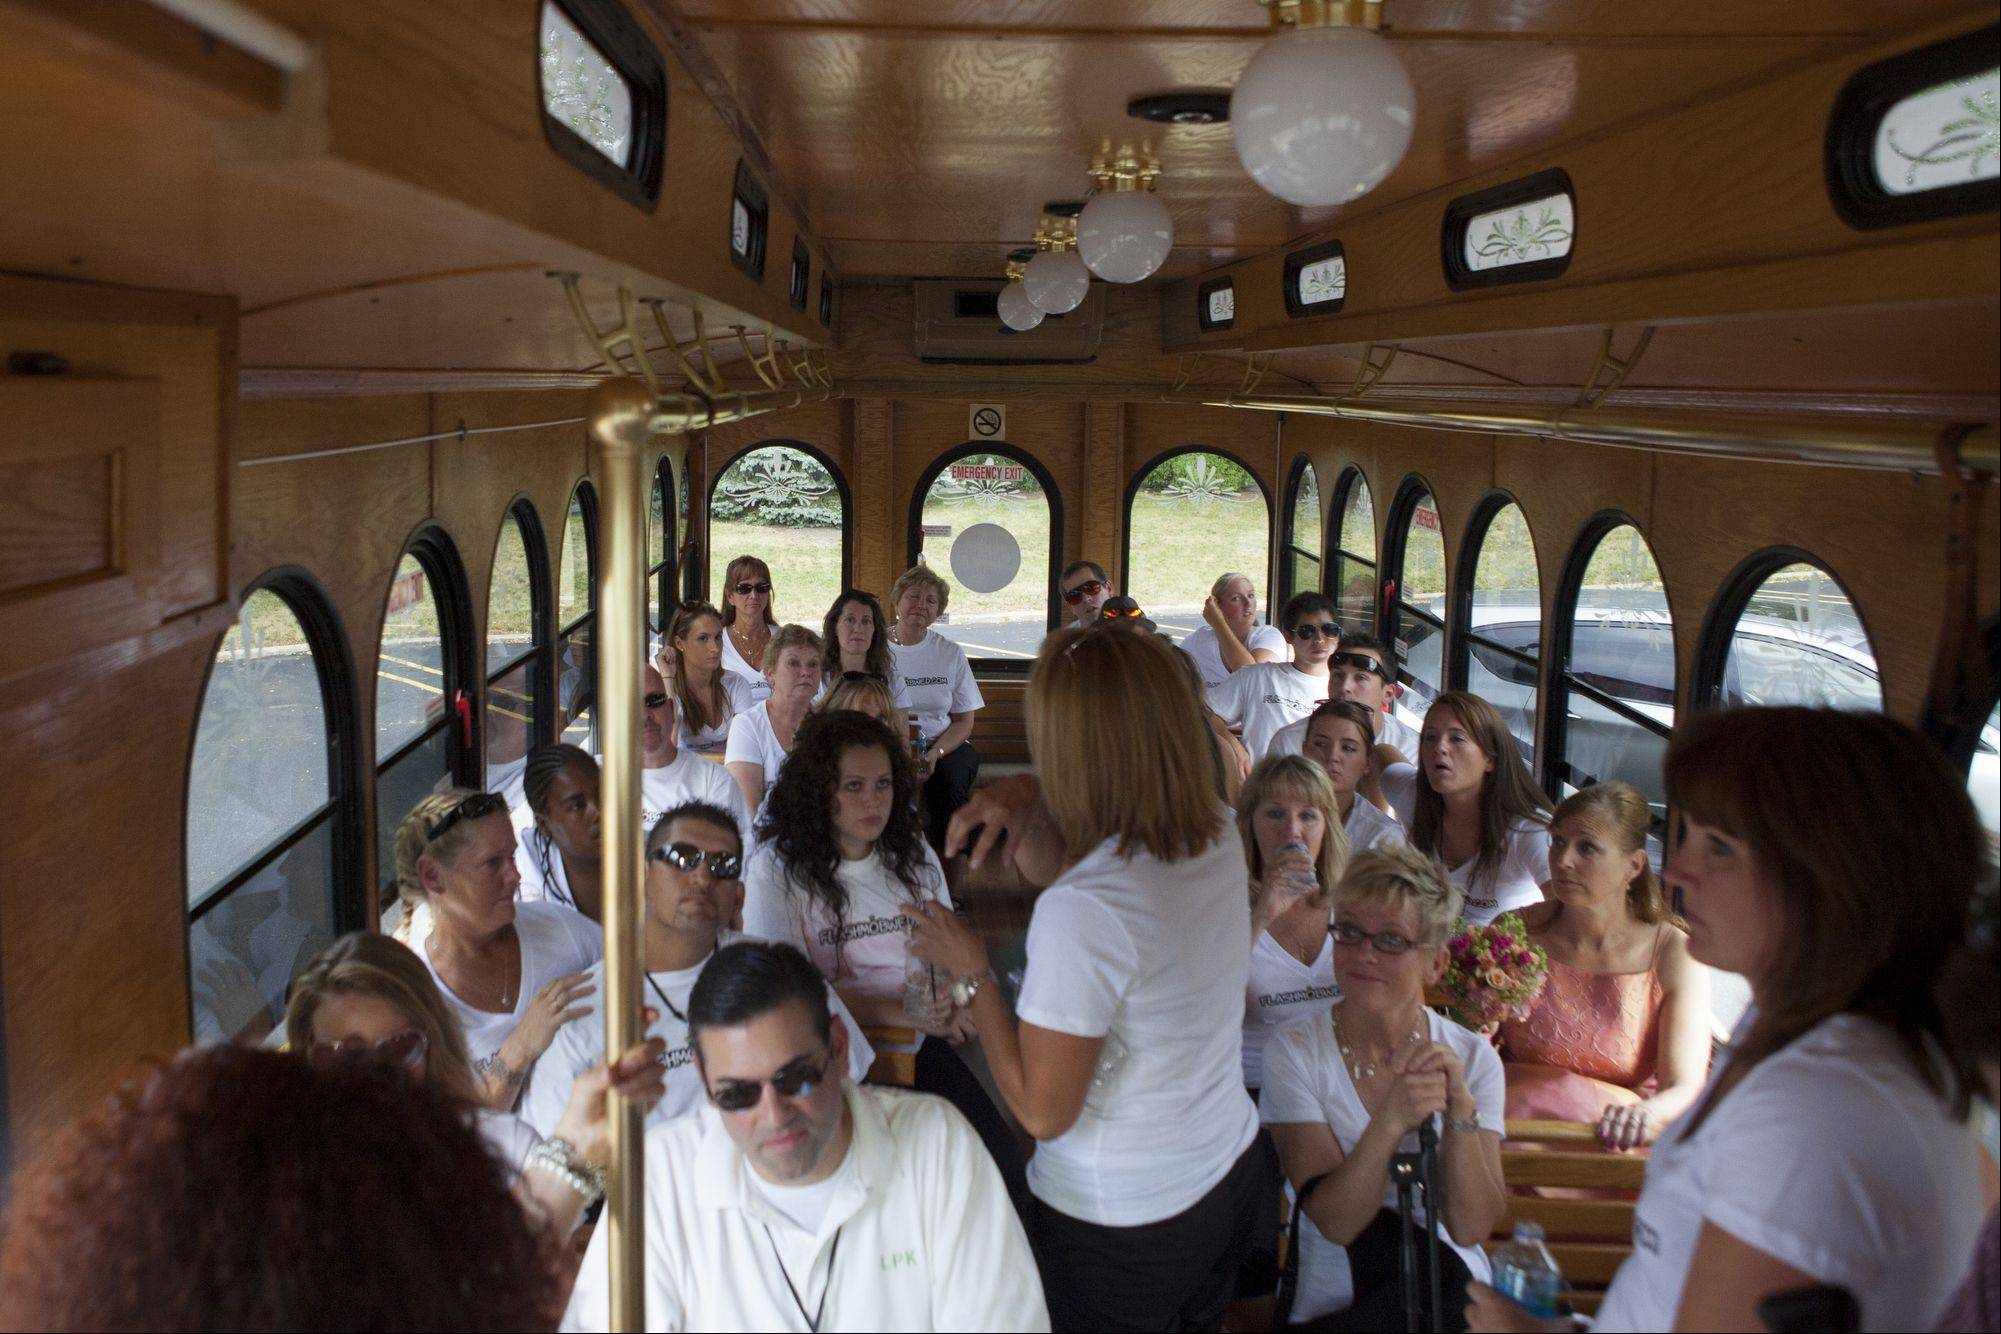 A group of 25 gather inside a trolley as they prepare to go to the home of Libby Watkins and Mike Conjura to set up a wedding that only the couple knew about.